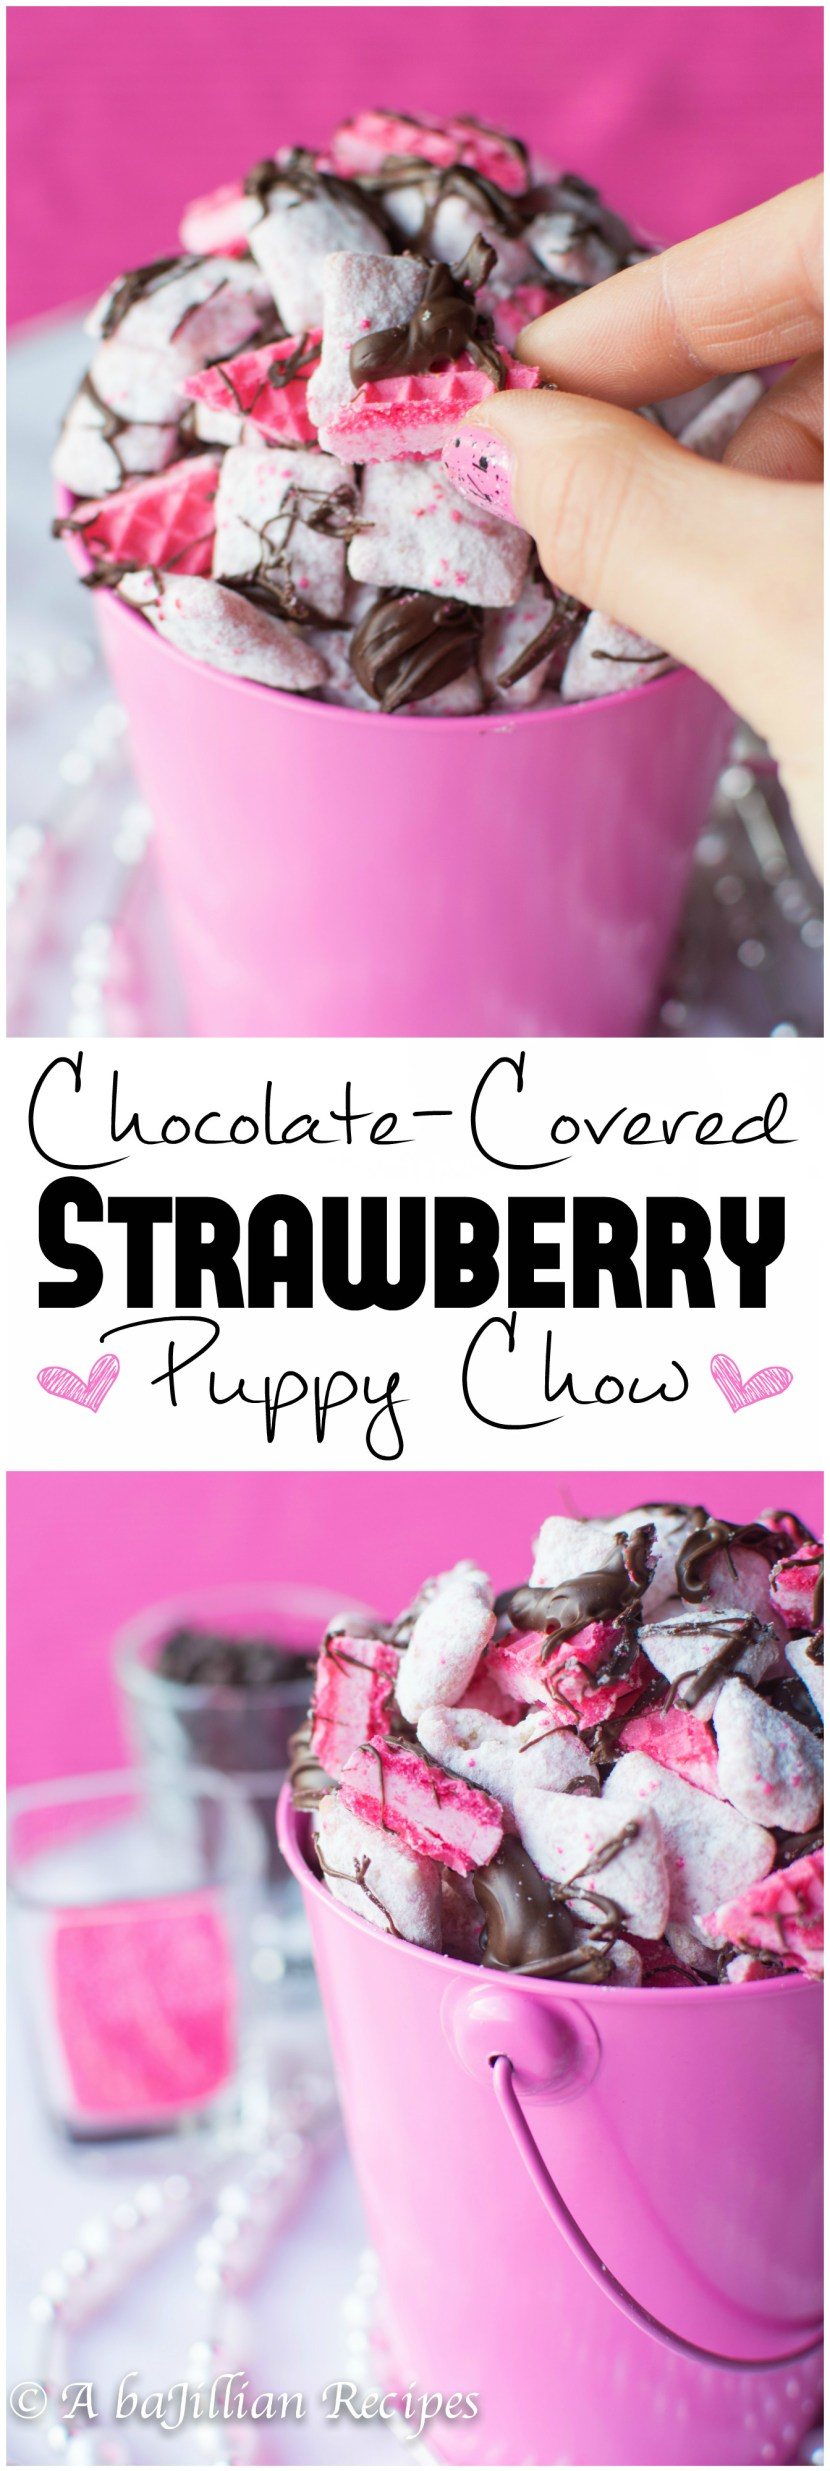 Chocolate Covered Strawberry Puppy Chow | A baJillian Recipes